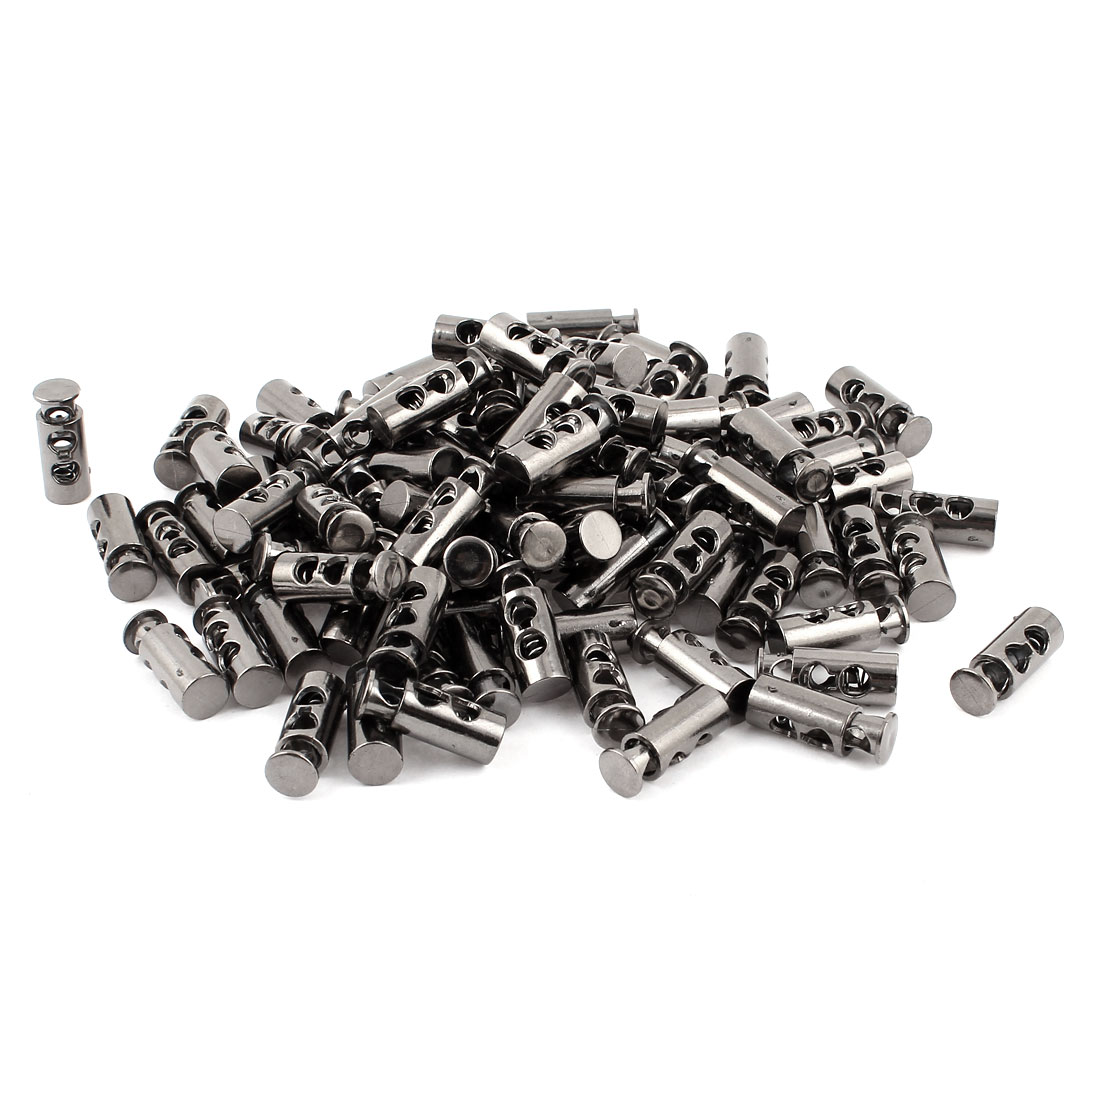 100 Pcs Tungsten Steel Gray Spring Loaded 5mm Dia Dual Holes Cord Locks Stoppers Toggles